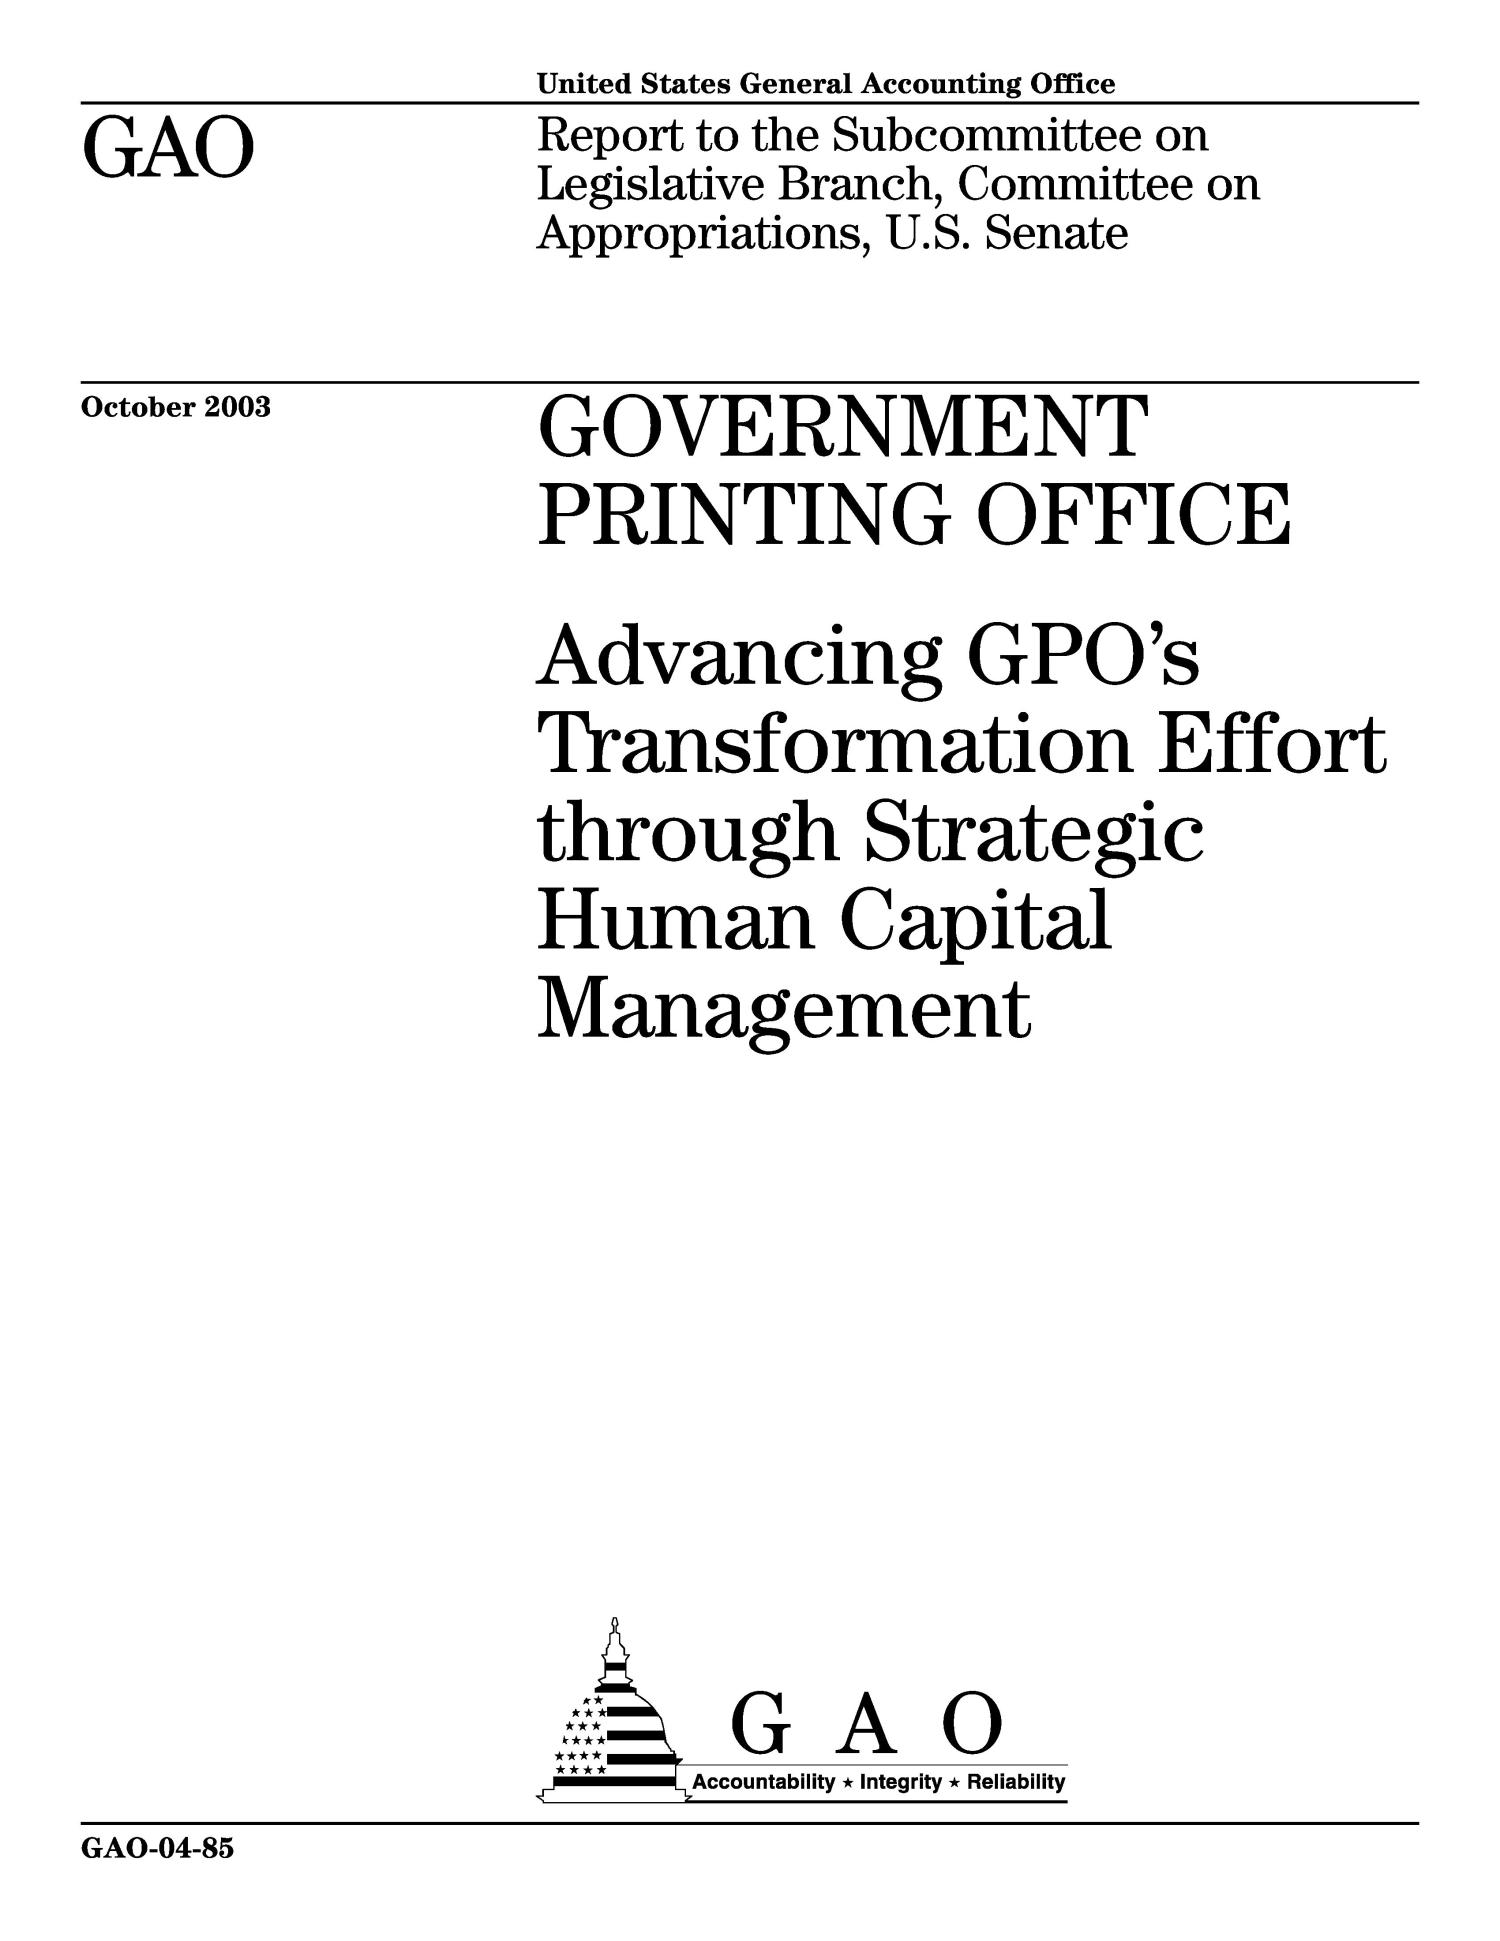 Government Printing Office: Advancing GPO's Transformation Effort through Strategic Human Capital Management                                                                                                      [Sequence #]: 1 of 43